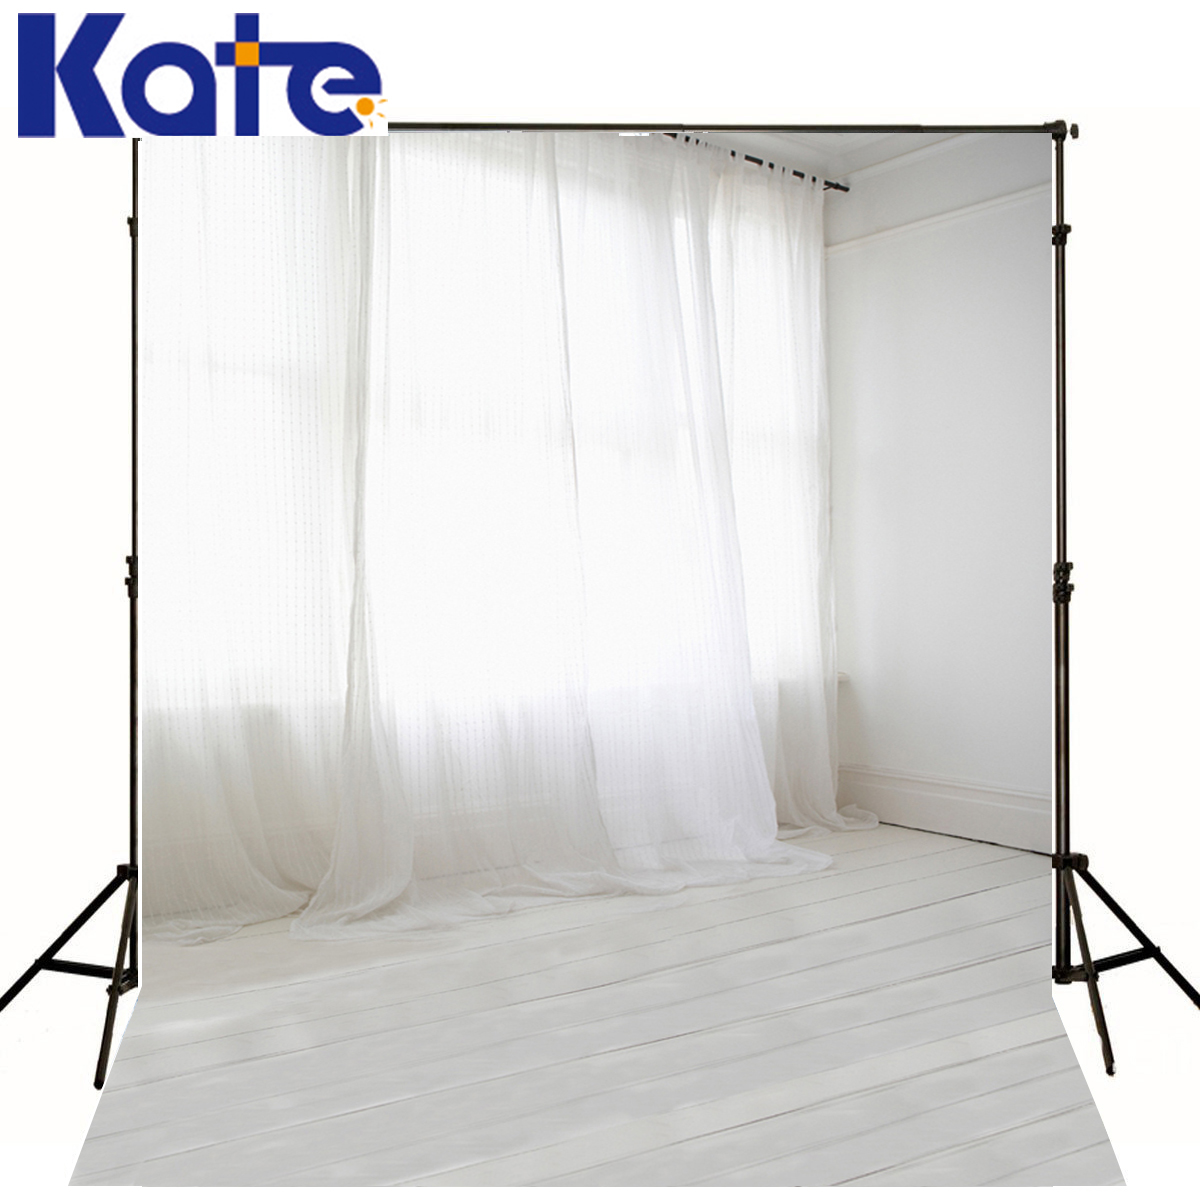 KATE Indoor Wedding Photography Backdrop Window White Wall Children Photo Background Mooden Floor Curtains Photo Studio Backdrop kate shabby window backdrop for photography portable cotton photographic studio props gothic indoor background 5x7ft